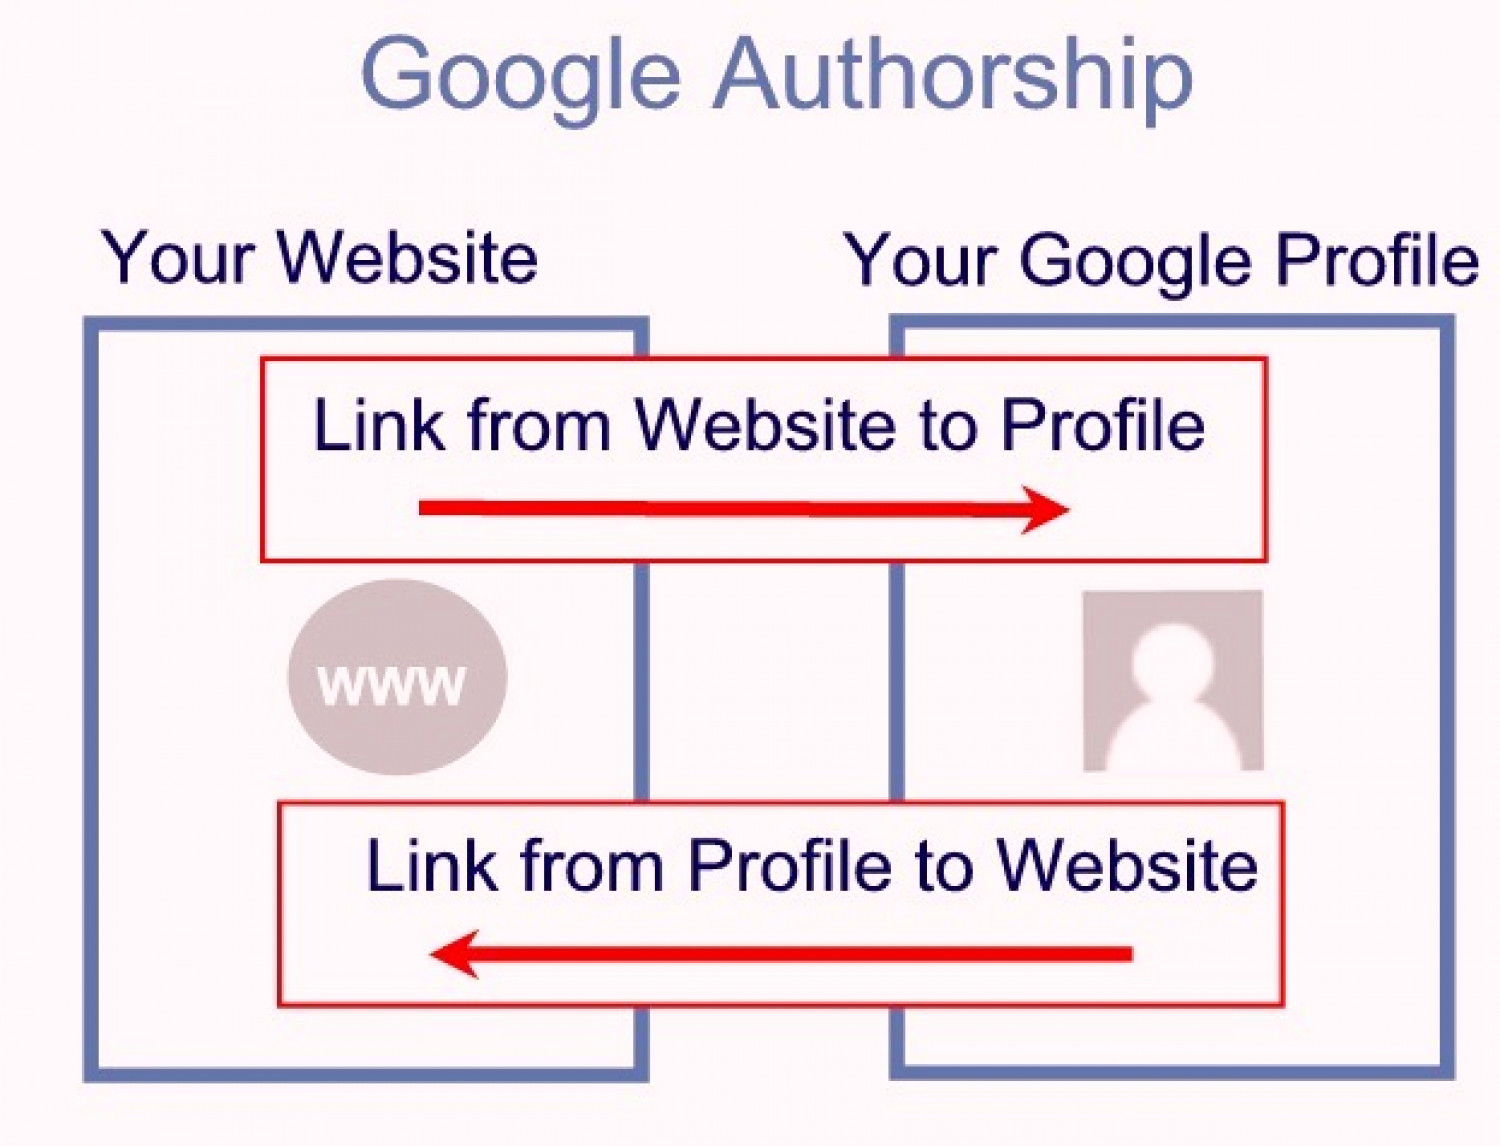 Ebriks-Google Authorship programme Infographic